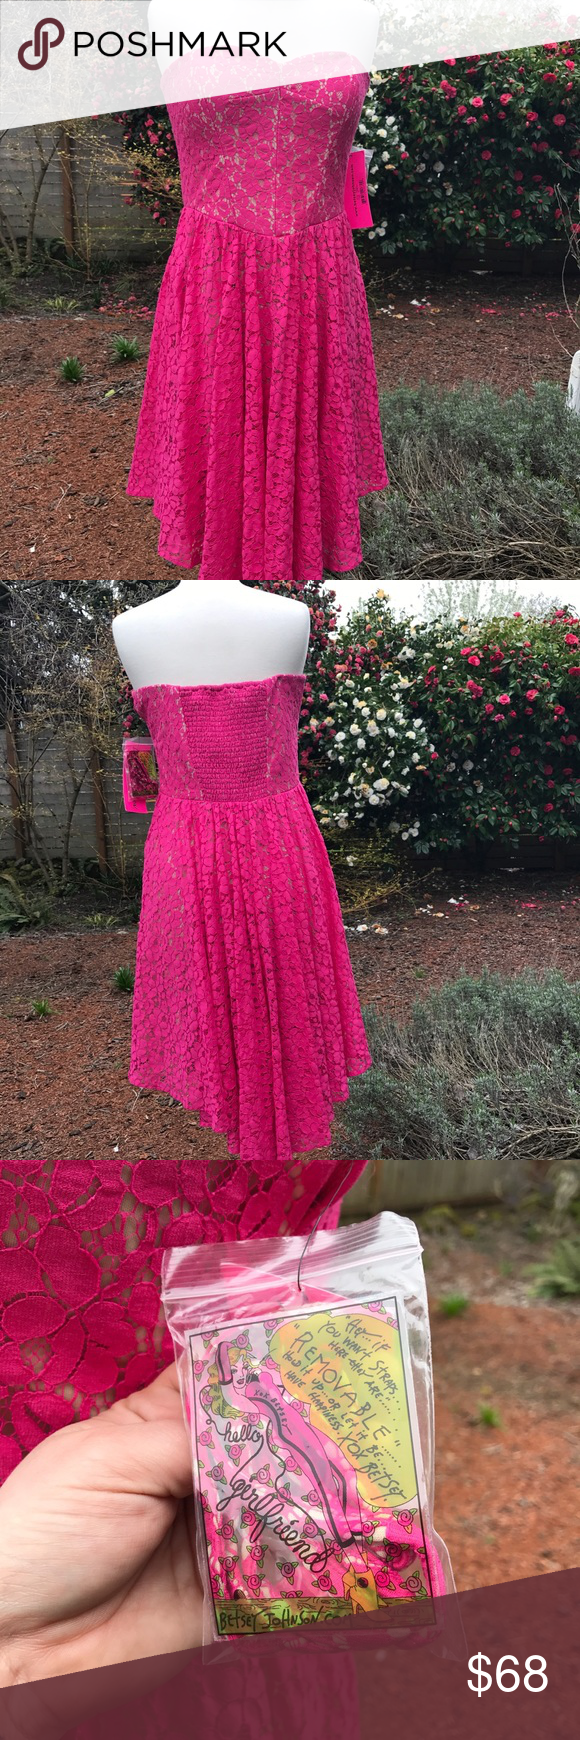 💖Pretty in pink! HOT pink lace punk party dress💖 NWT | Pink ...